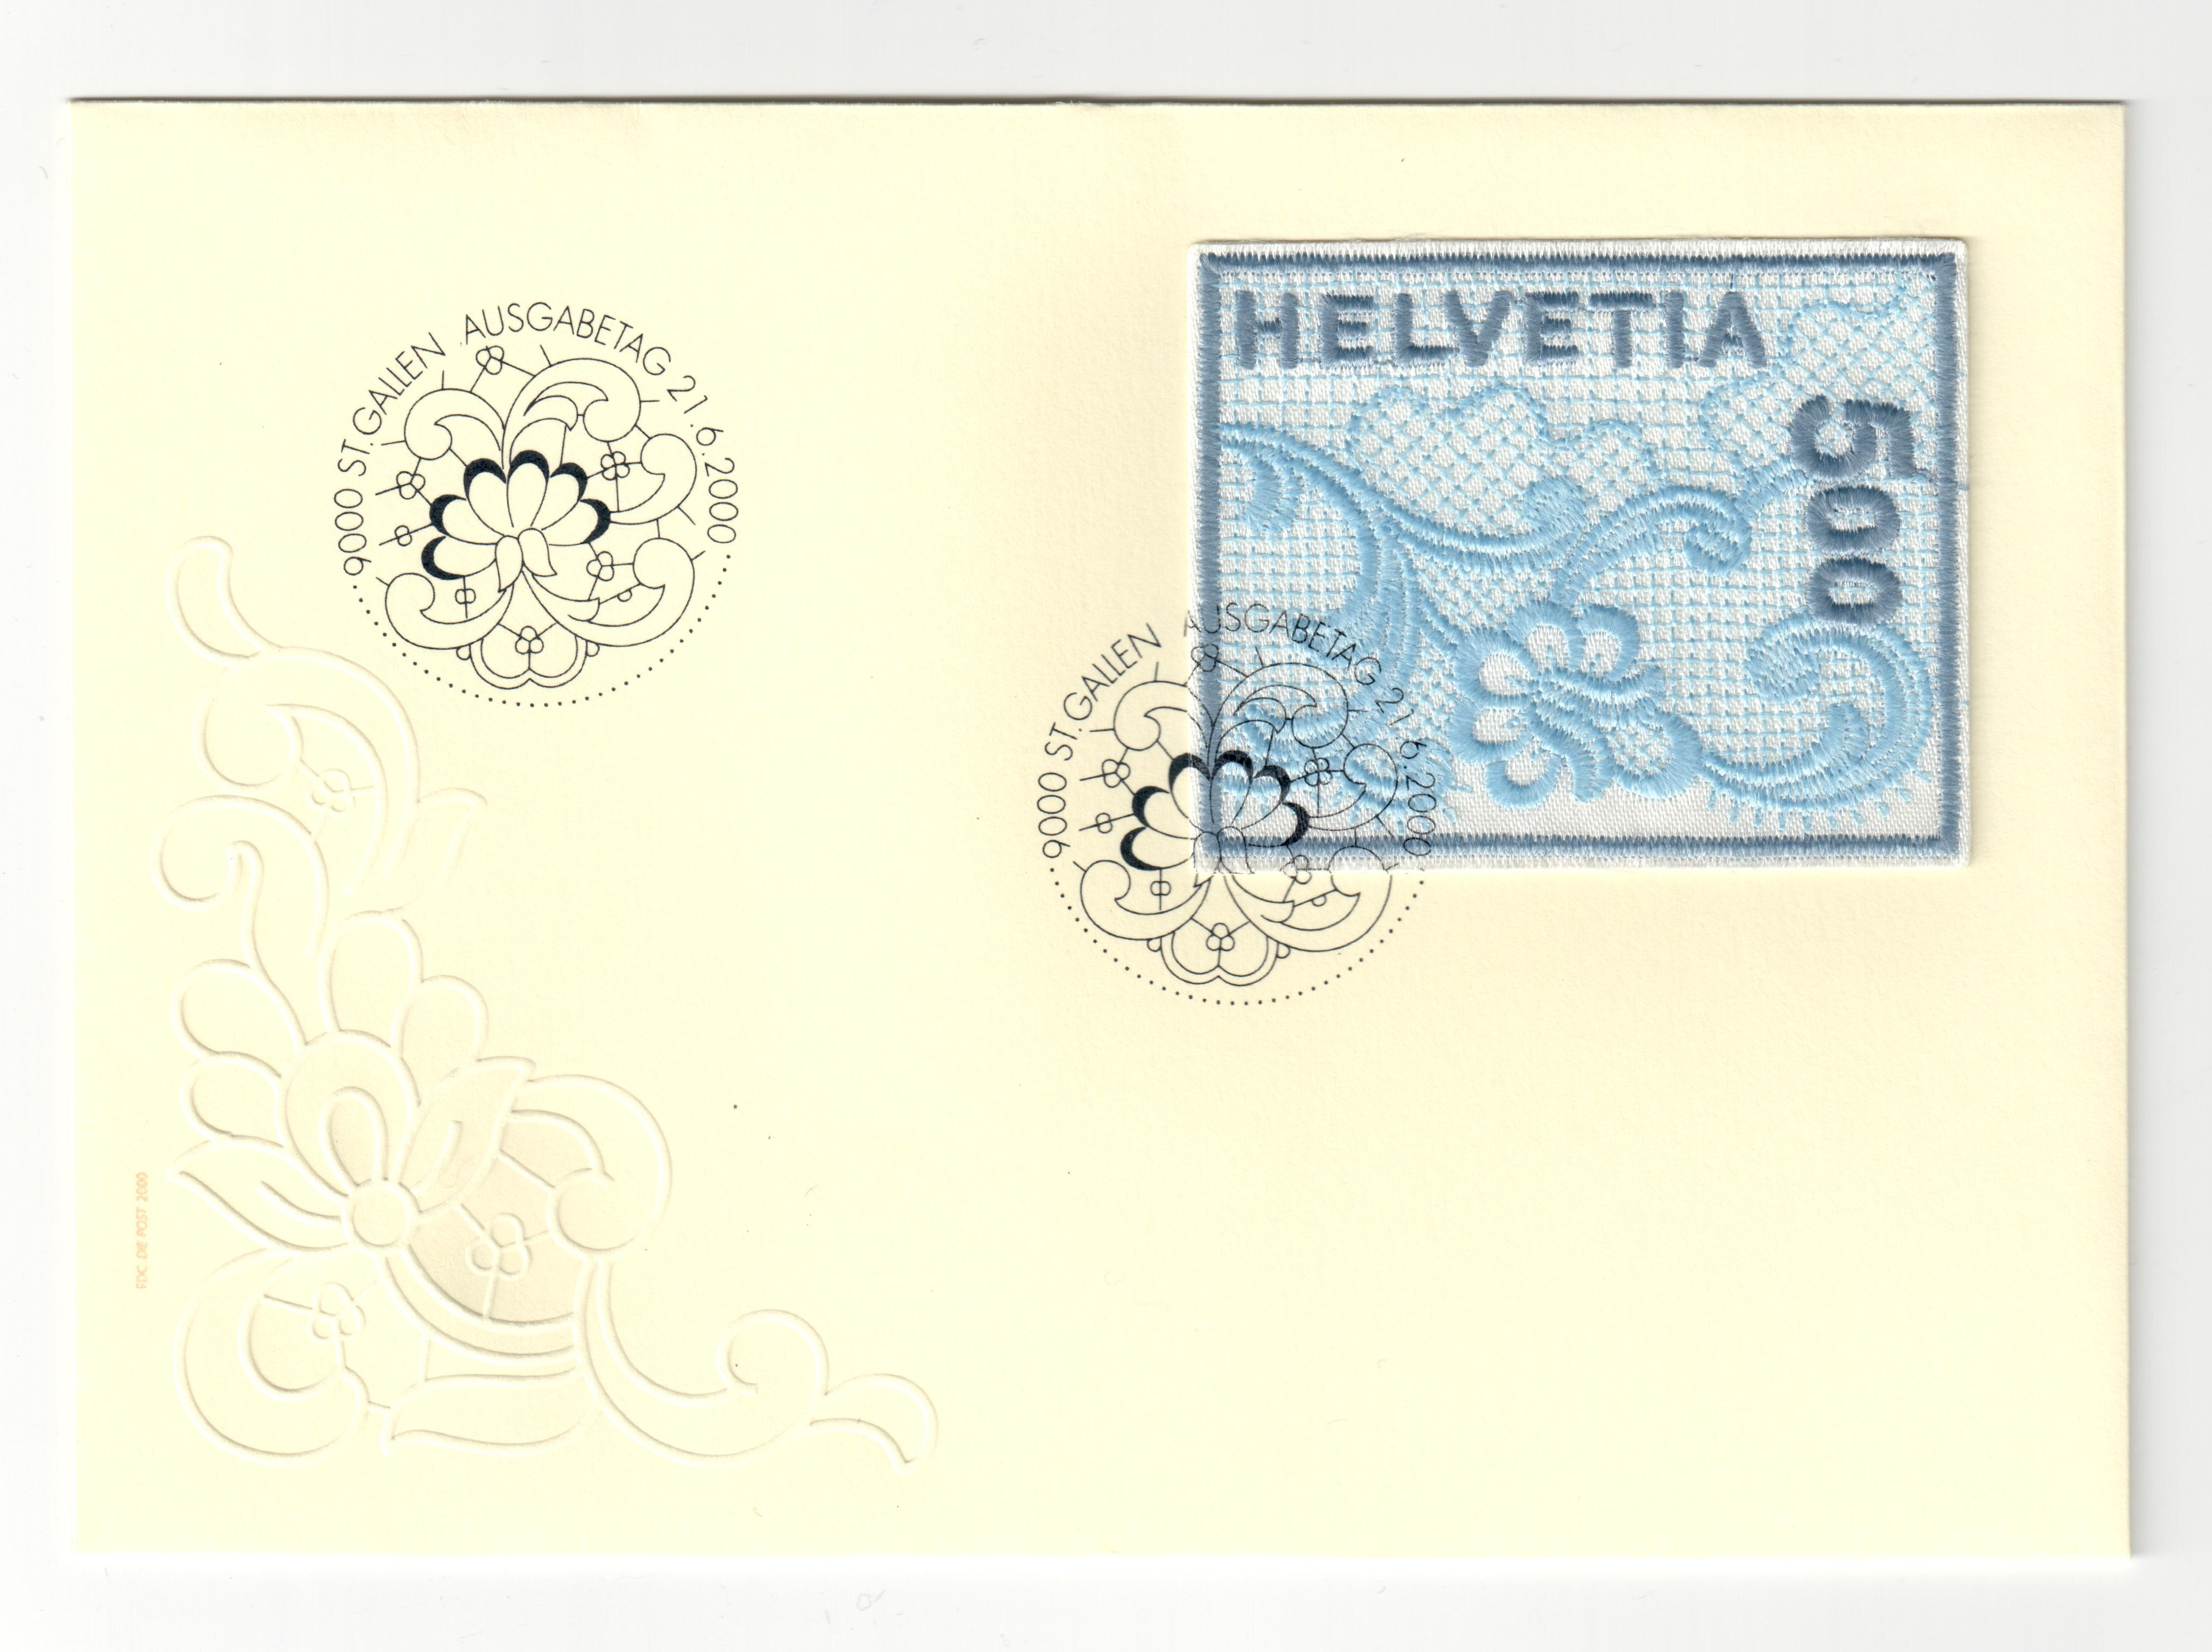 First ever machine embroidered postage stamp, based on St Gallen embroidery. Switzerland 2000.